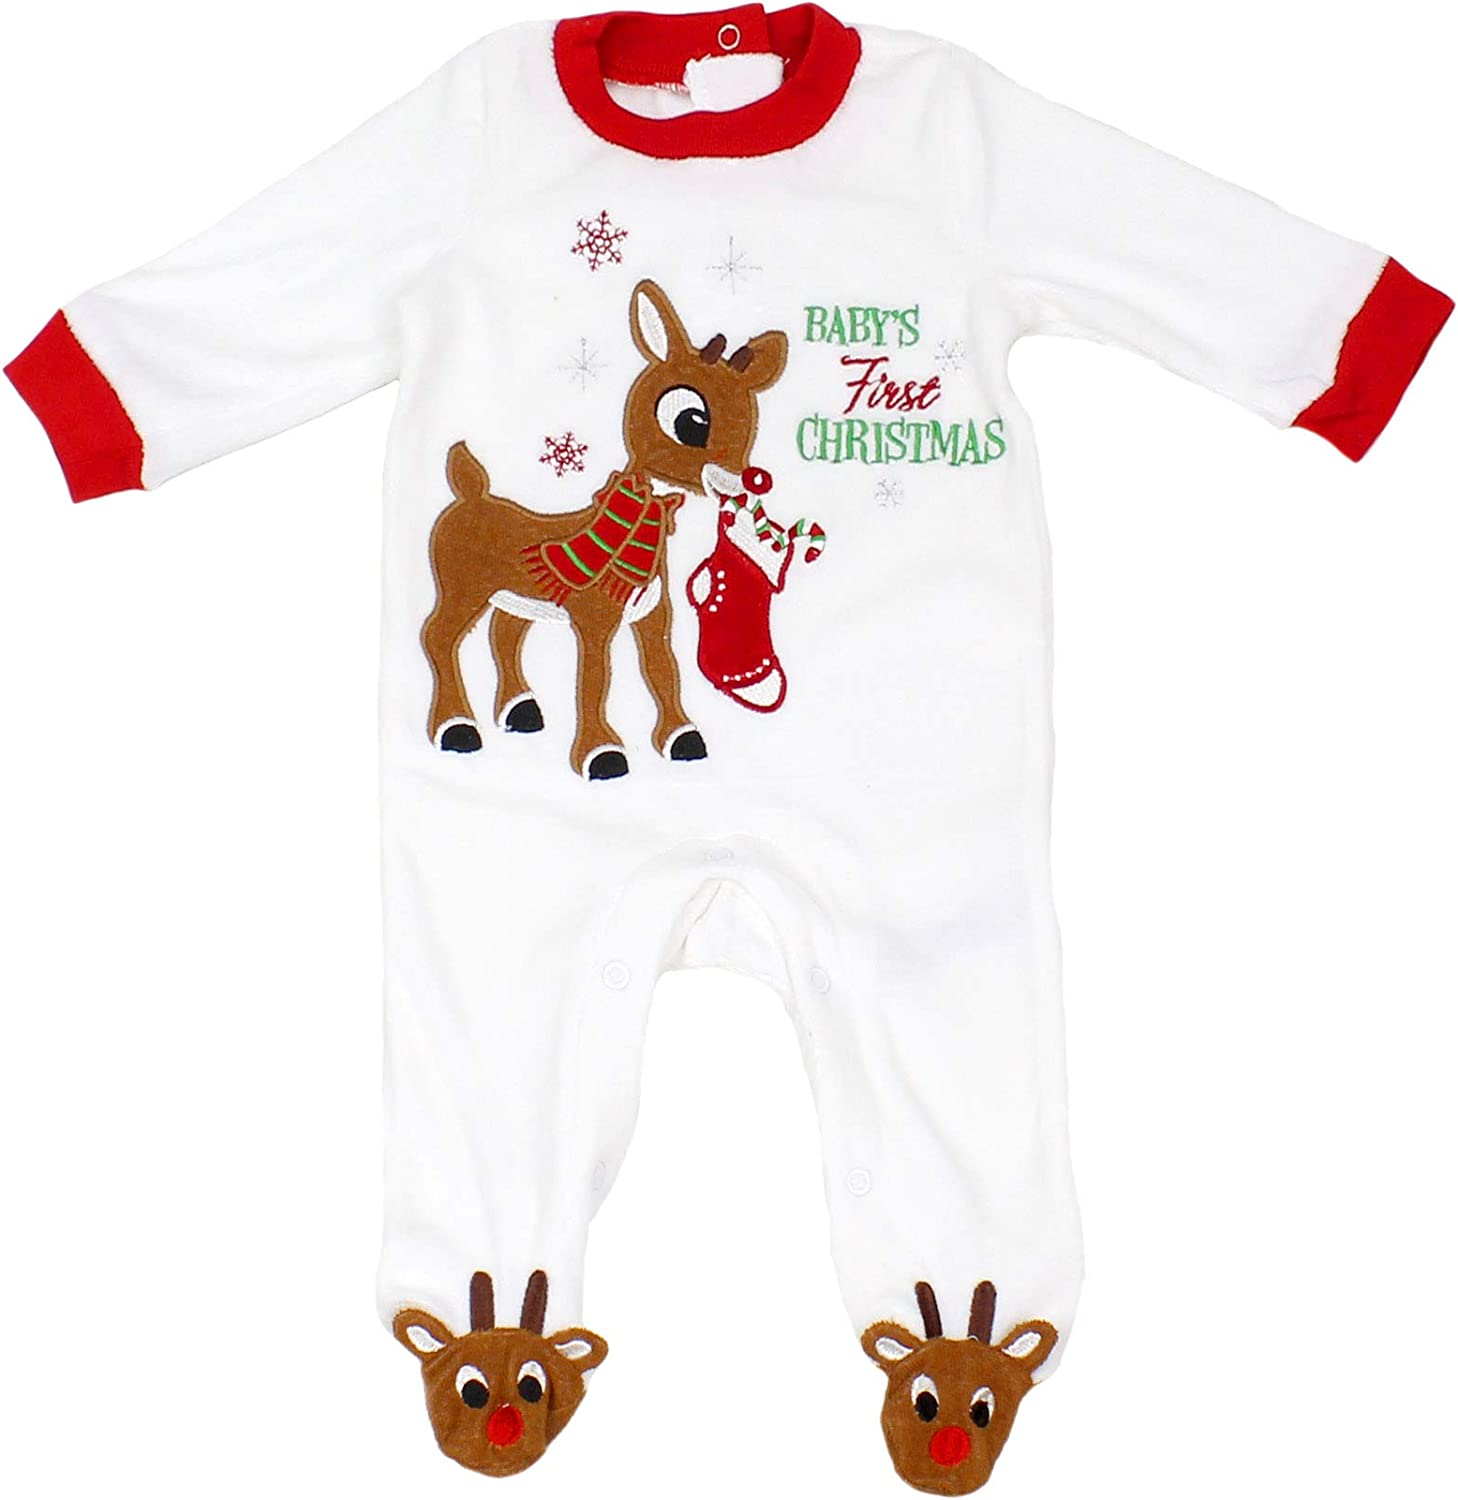 Baby\u2019s First Christmas Red /& Green striped cotton baby onesie with Christmas Tree